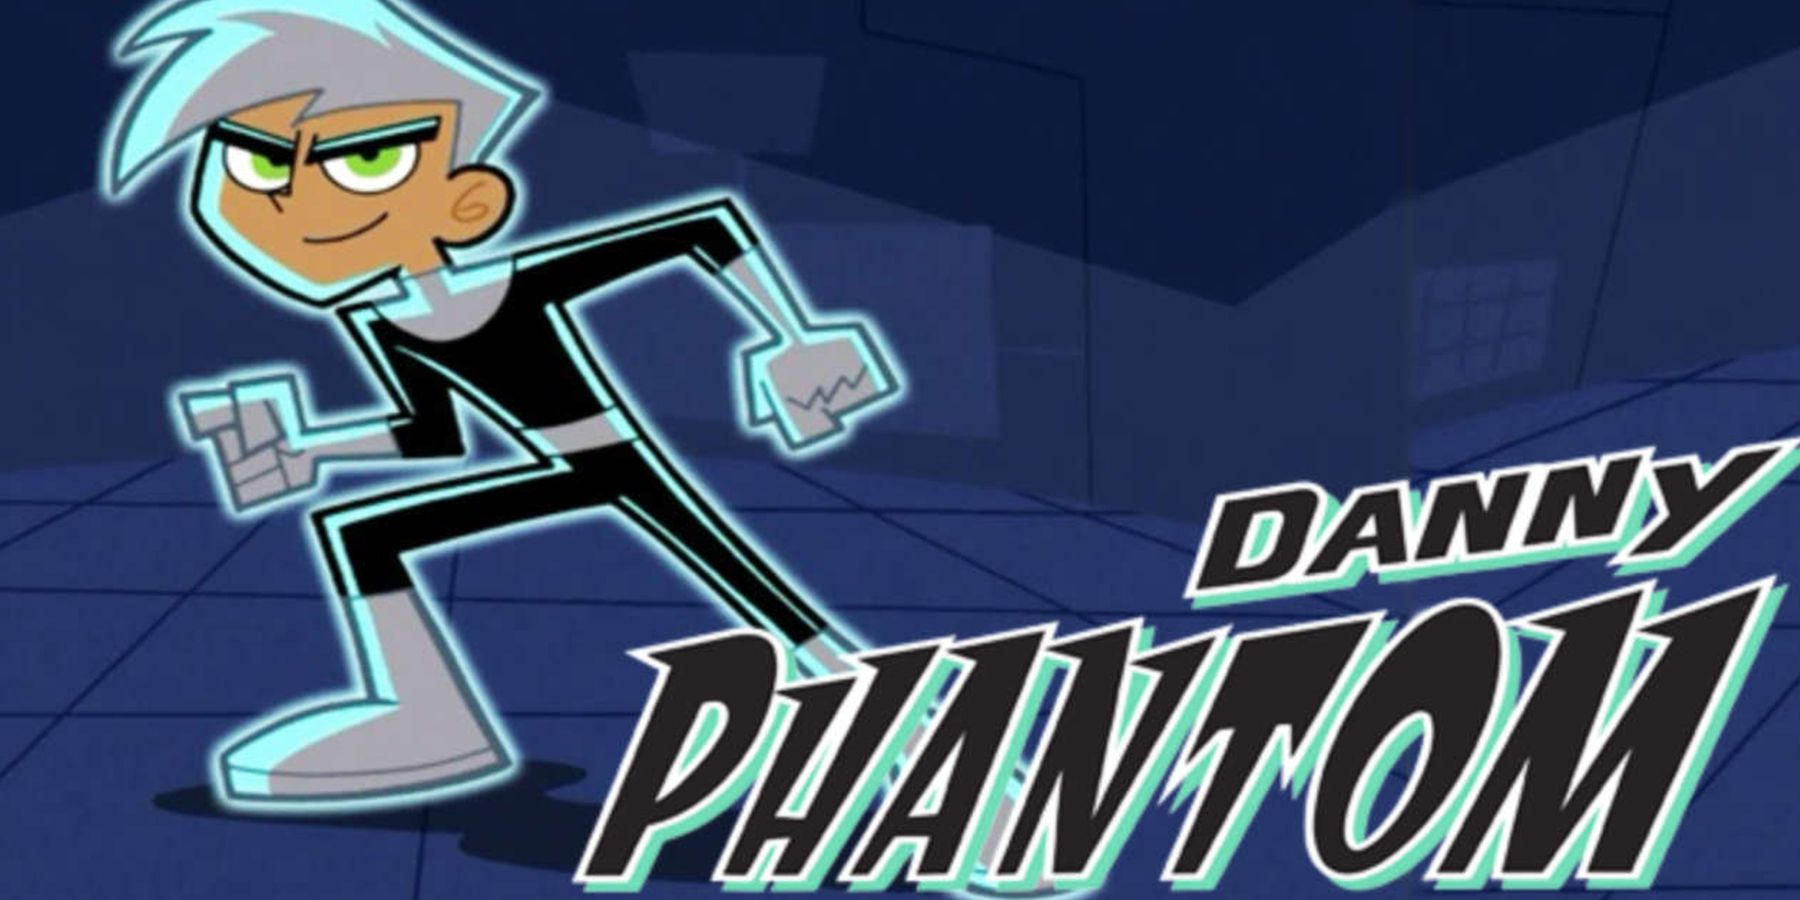 Danny Phantom Updates Will A Reboot Happen Screenrant